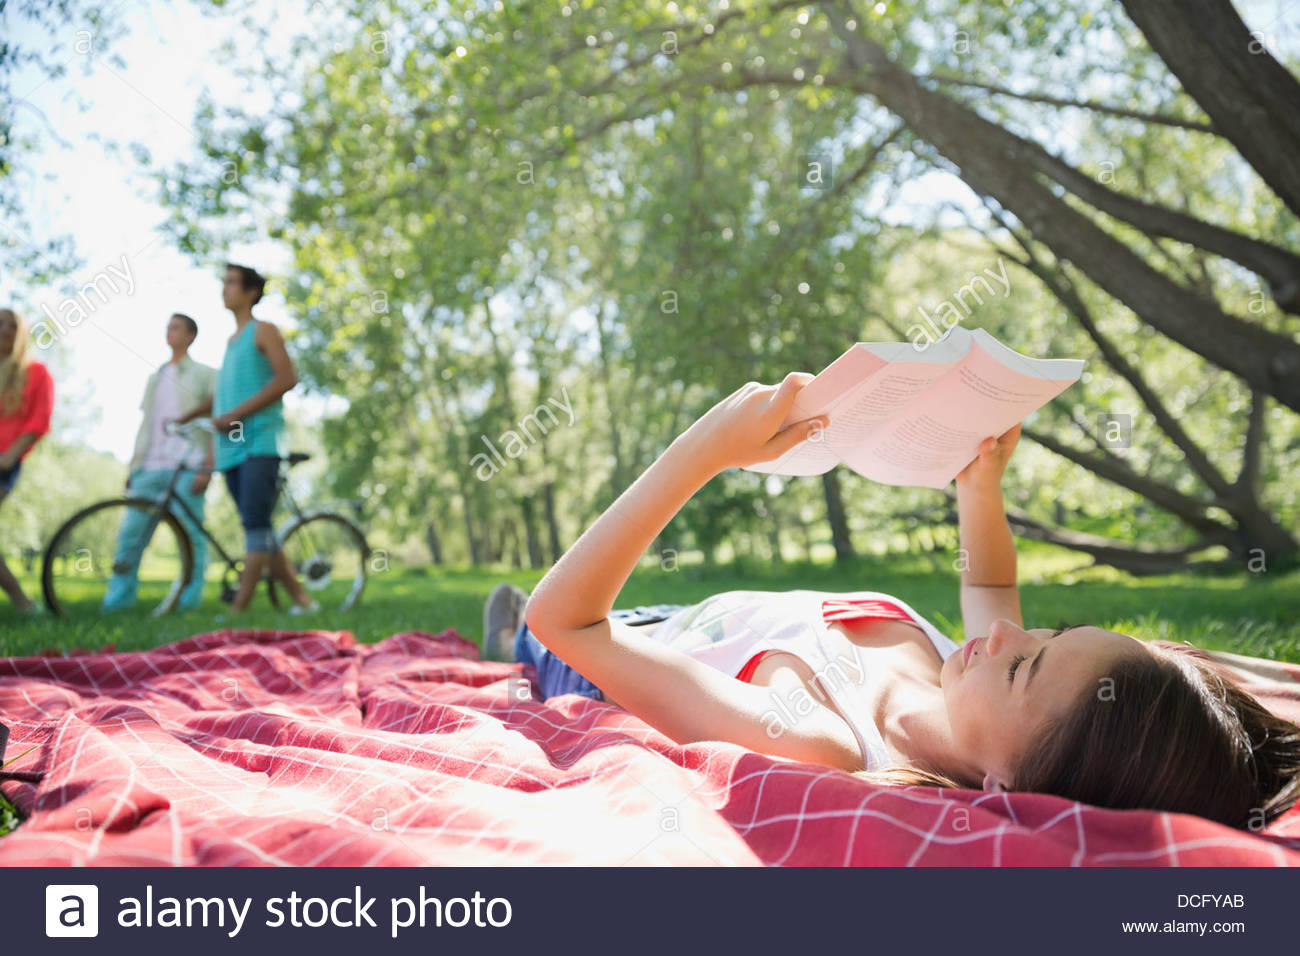 Teenage girl reading book in park - Stock Image